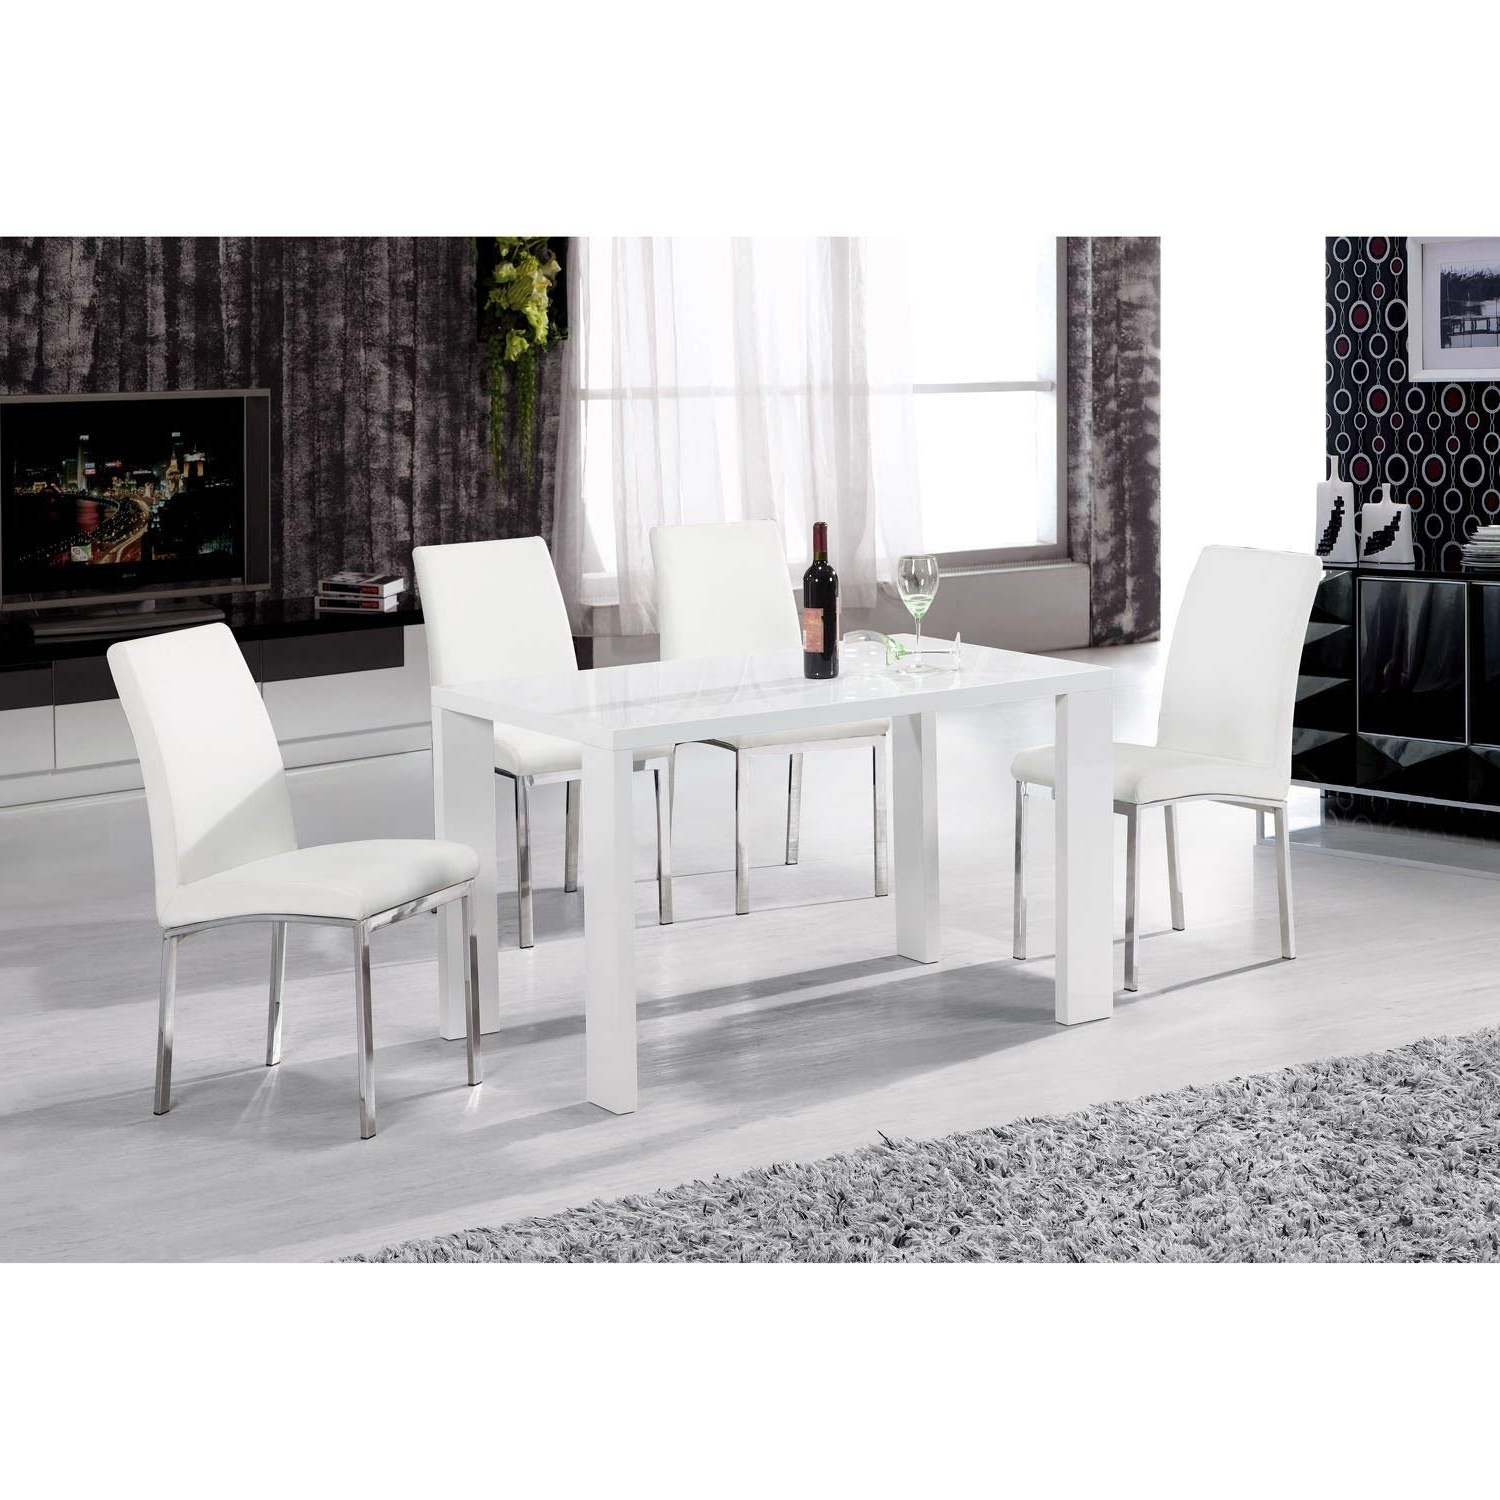 Current Gloss Dining Tables And Chairs Pertaining To Heartlands Peru White High Gloss 130Cm Dining Table In Wood (View 19 of 25)